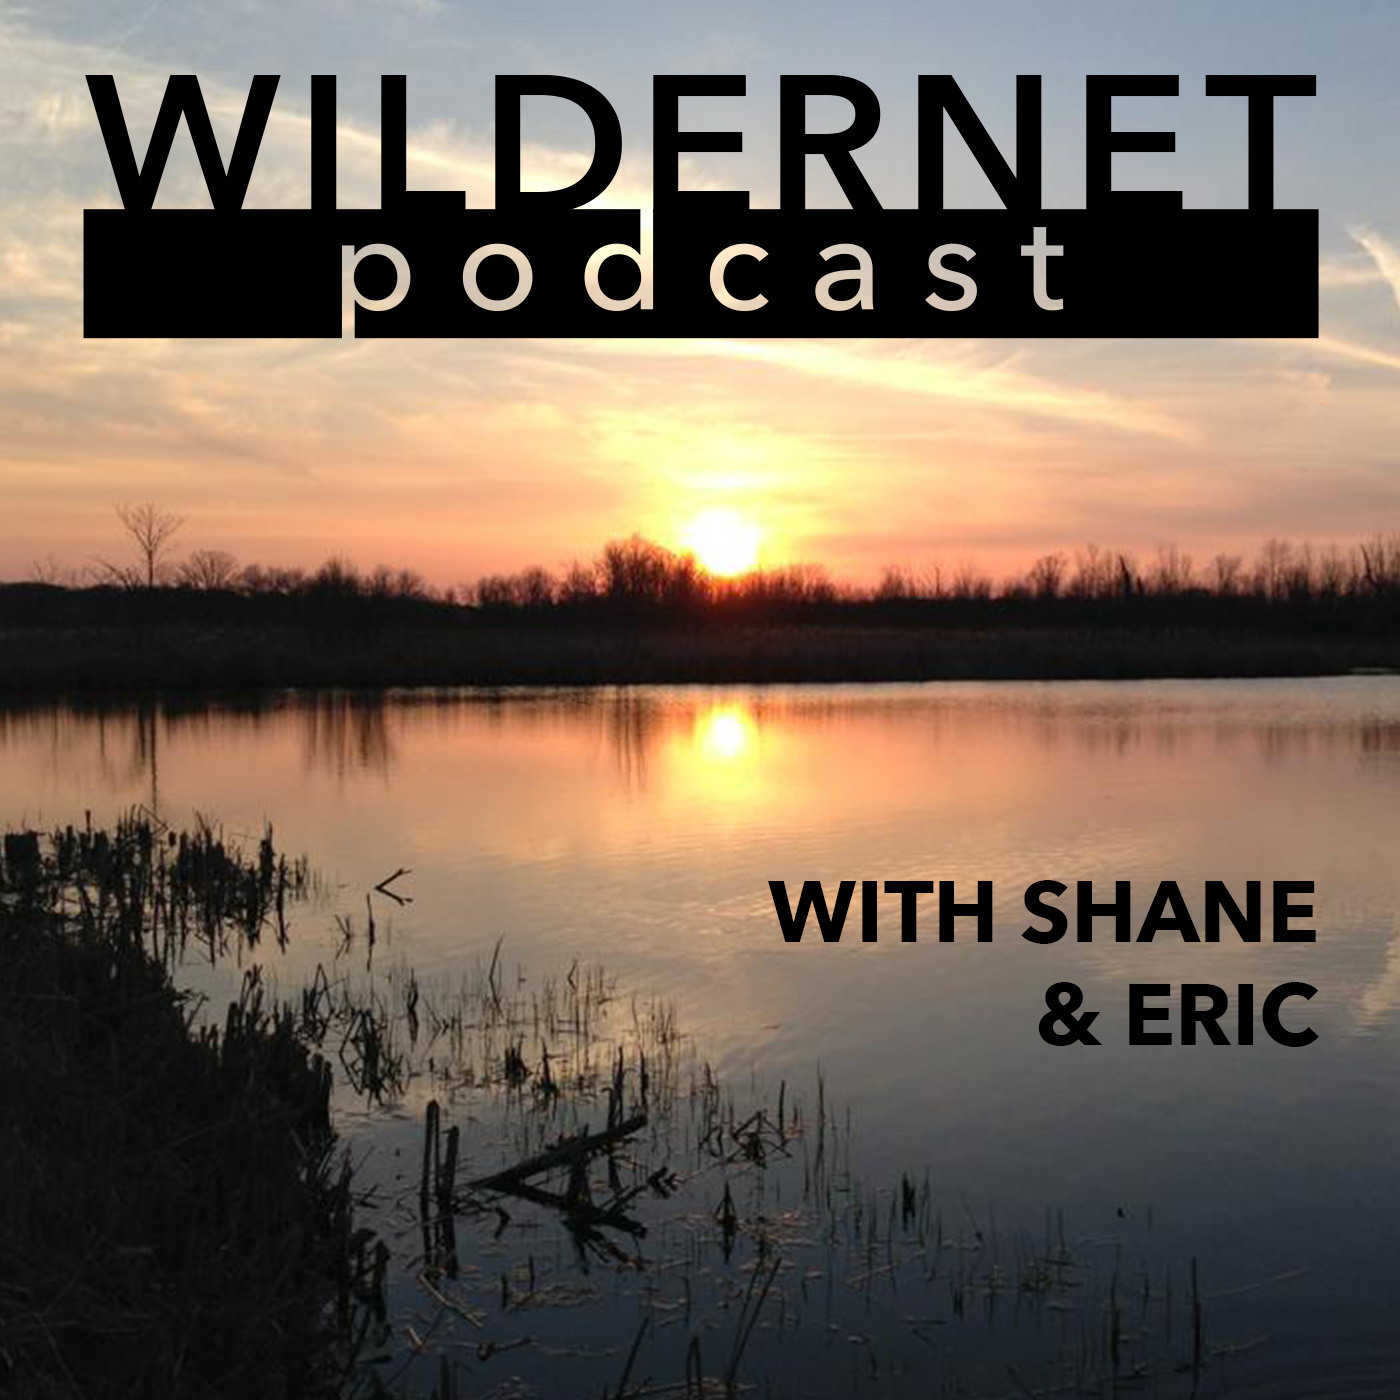 Wildernet Podcast